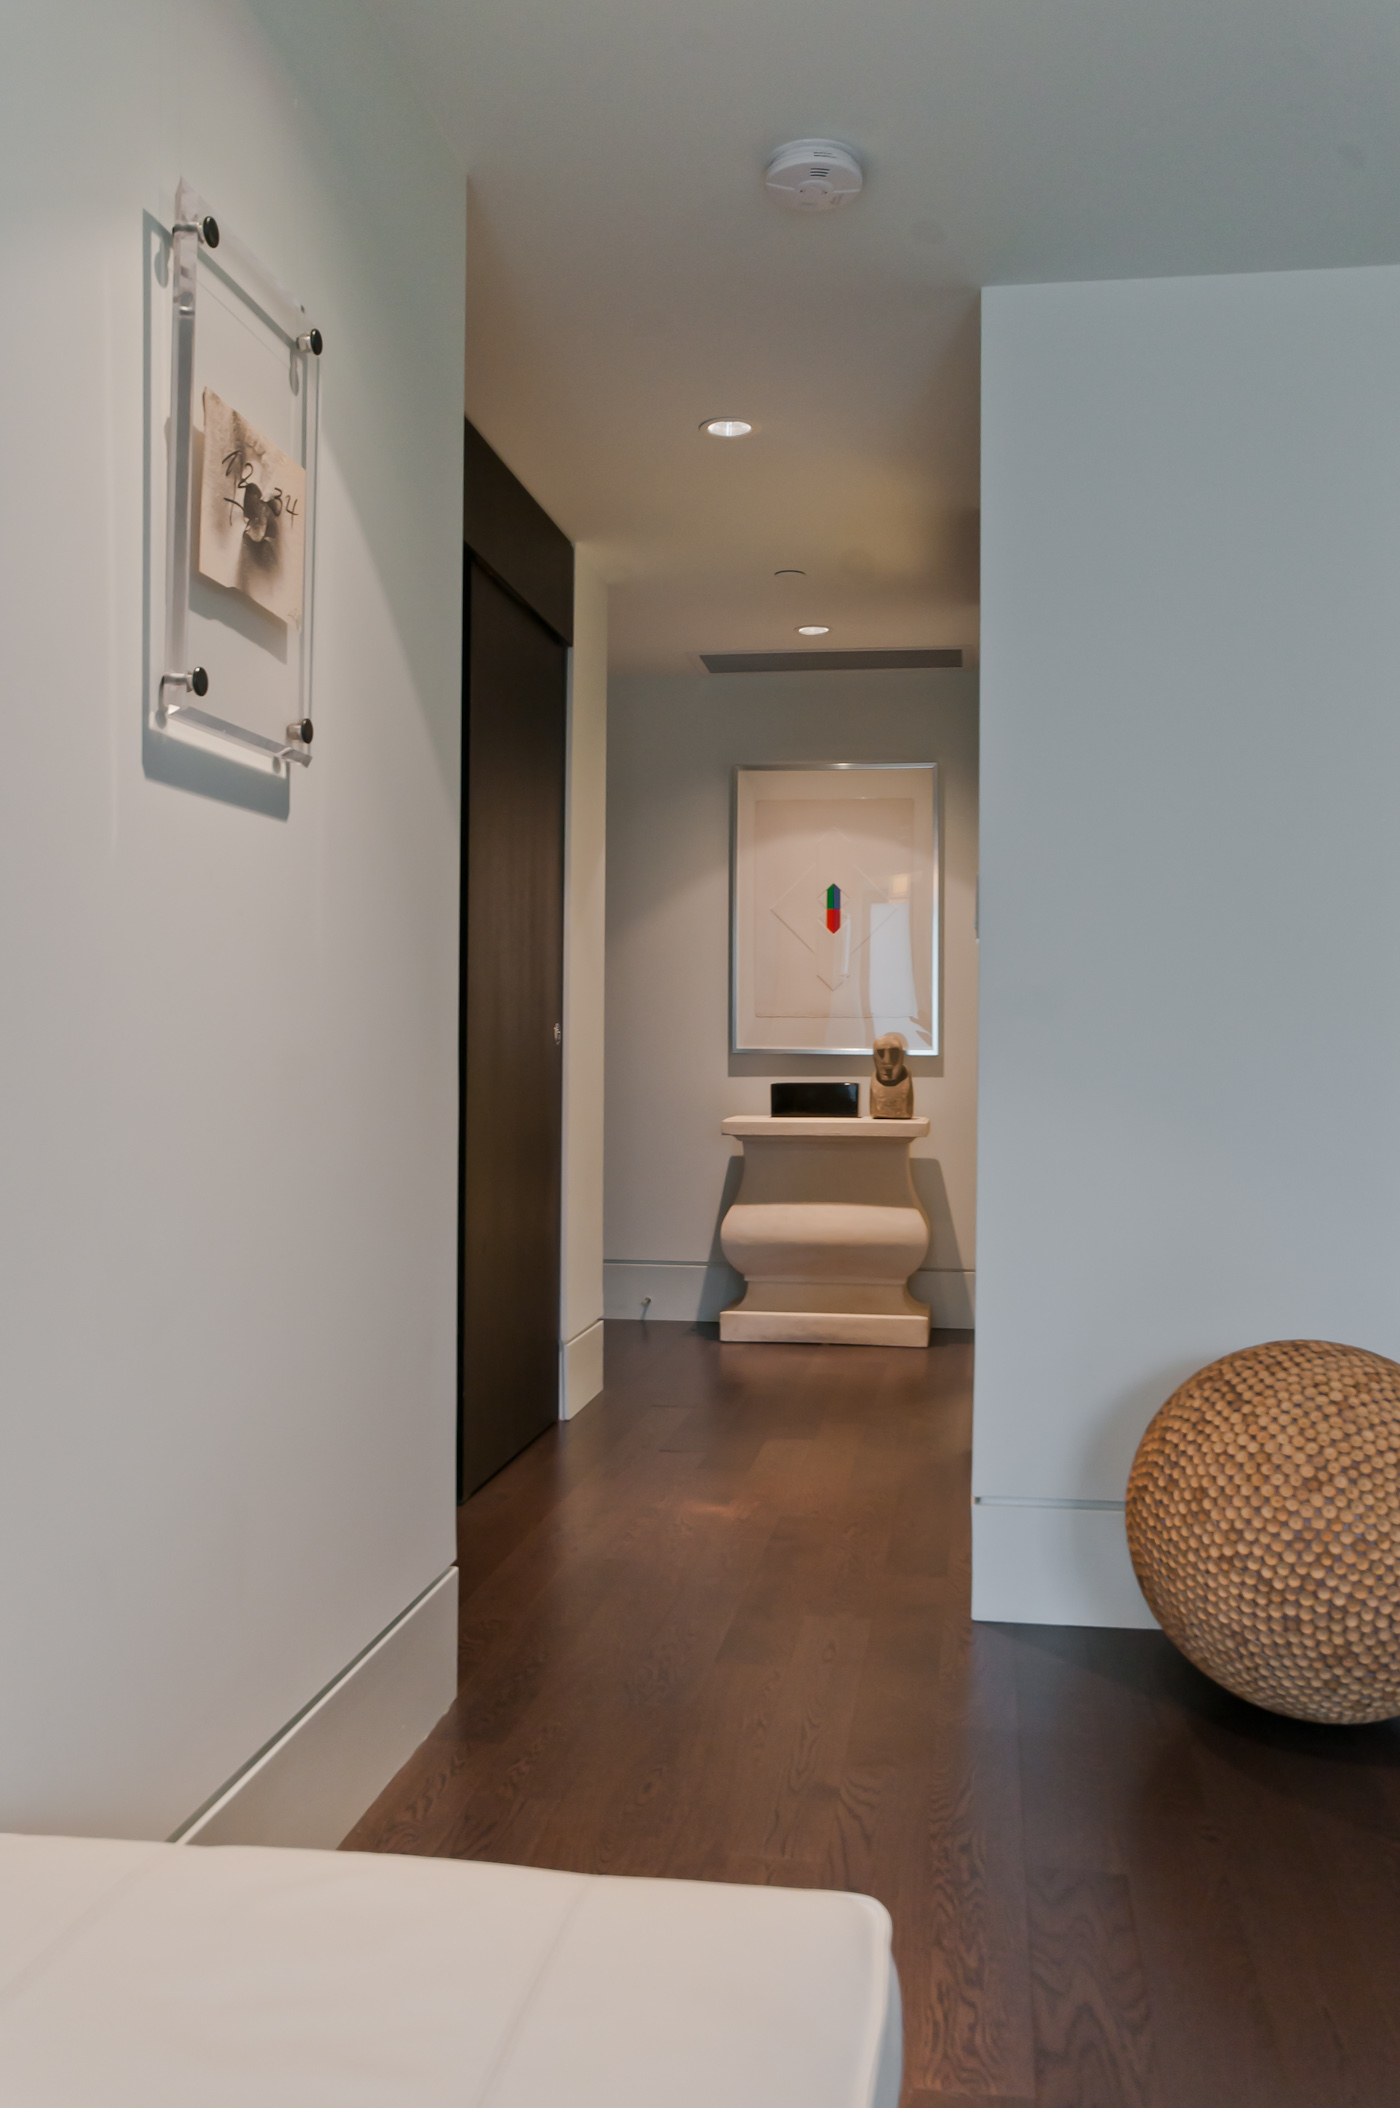 Foyer to building entrance - Yaletown - 1510 Homer Mews, Vancouver, BC, Canada